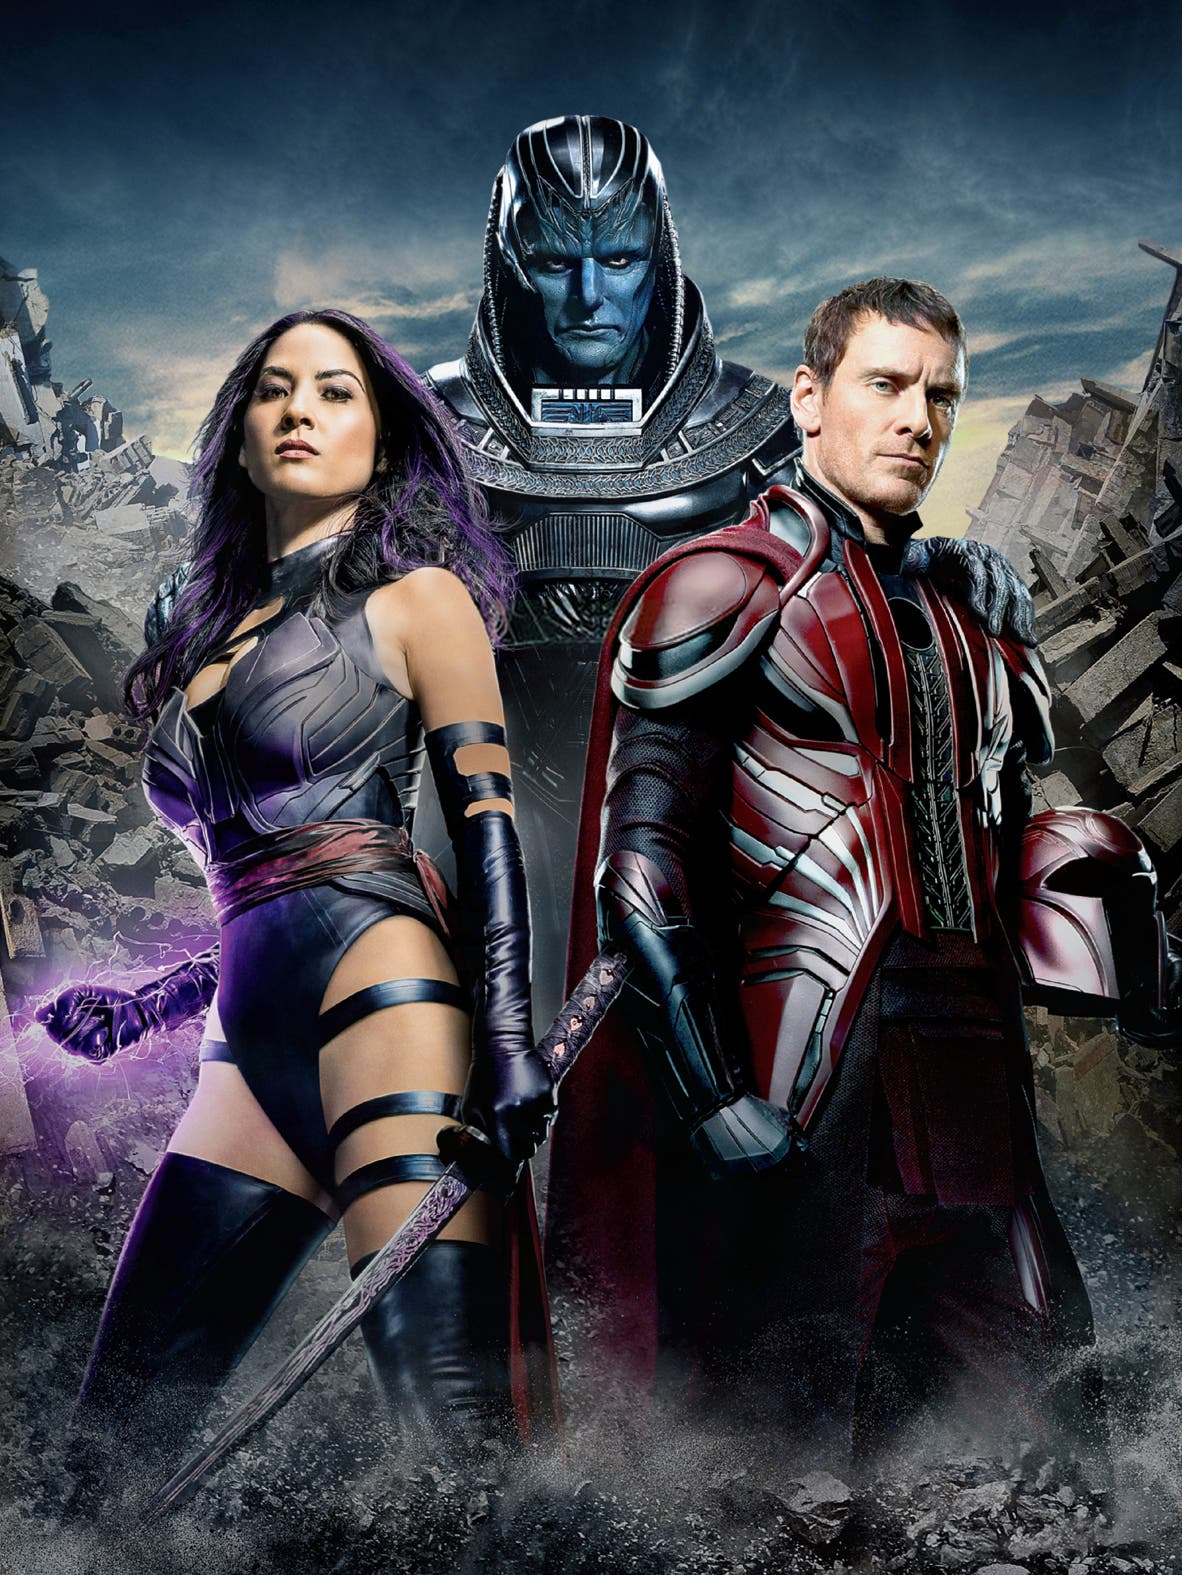 Movies 2016 (03) Xmen apocalypse